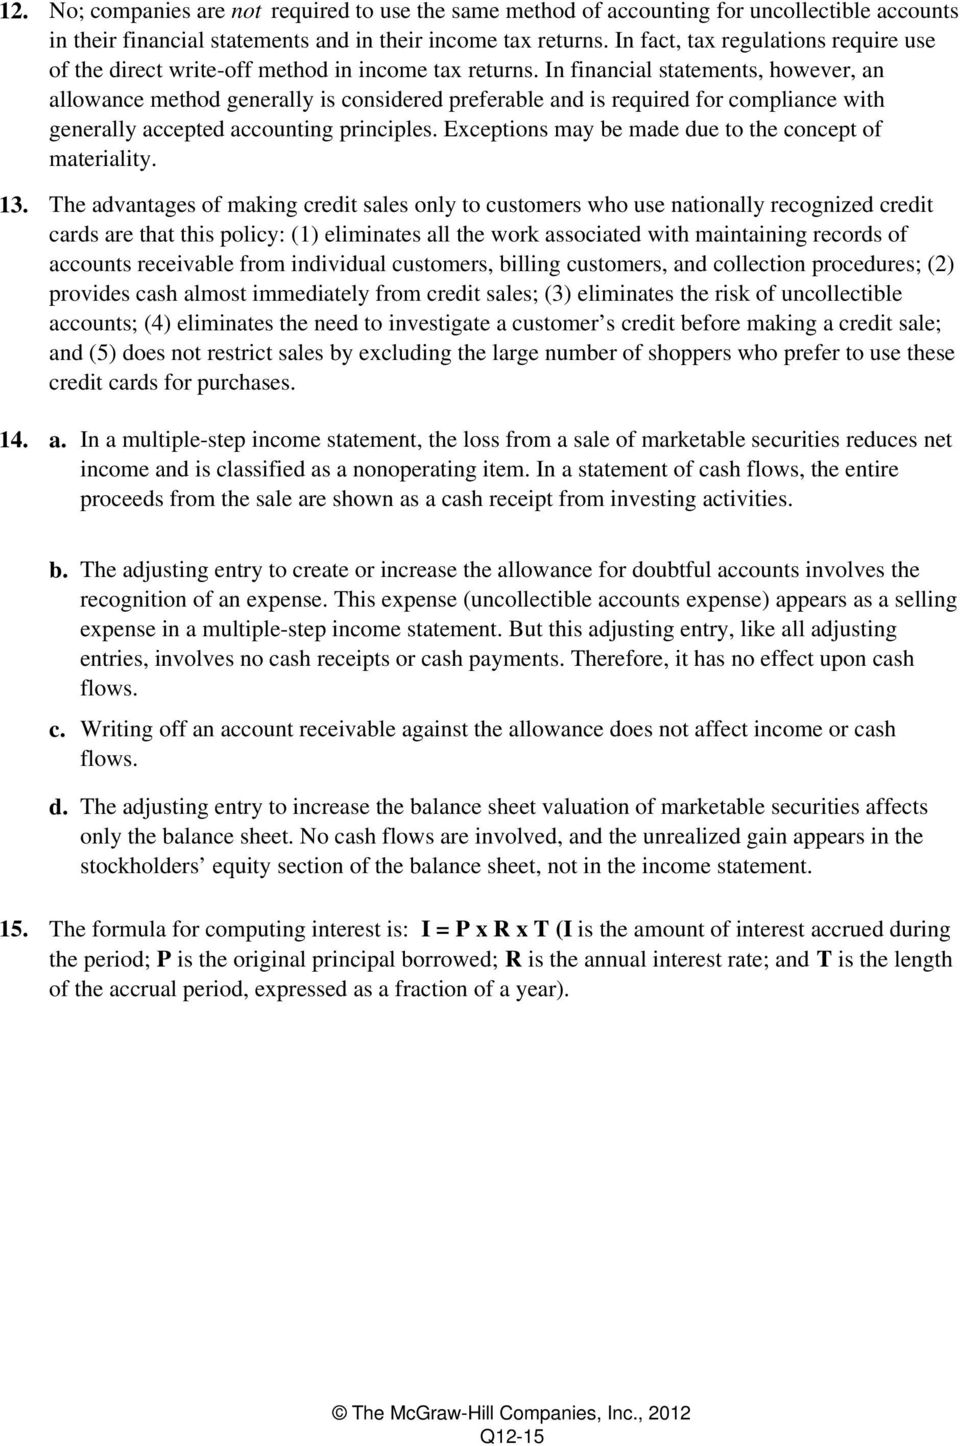 CHAPTER 7 FINANCIAL ASSETS - PDF